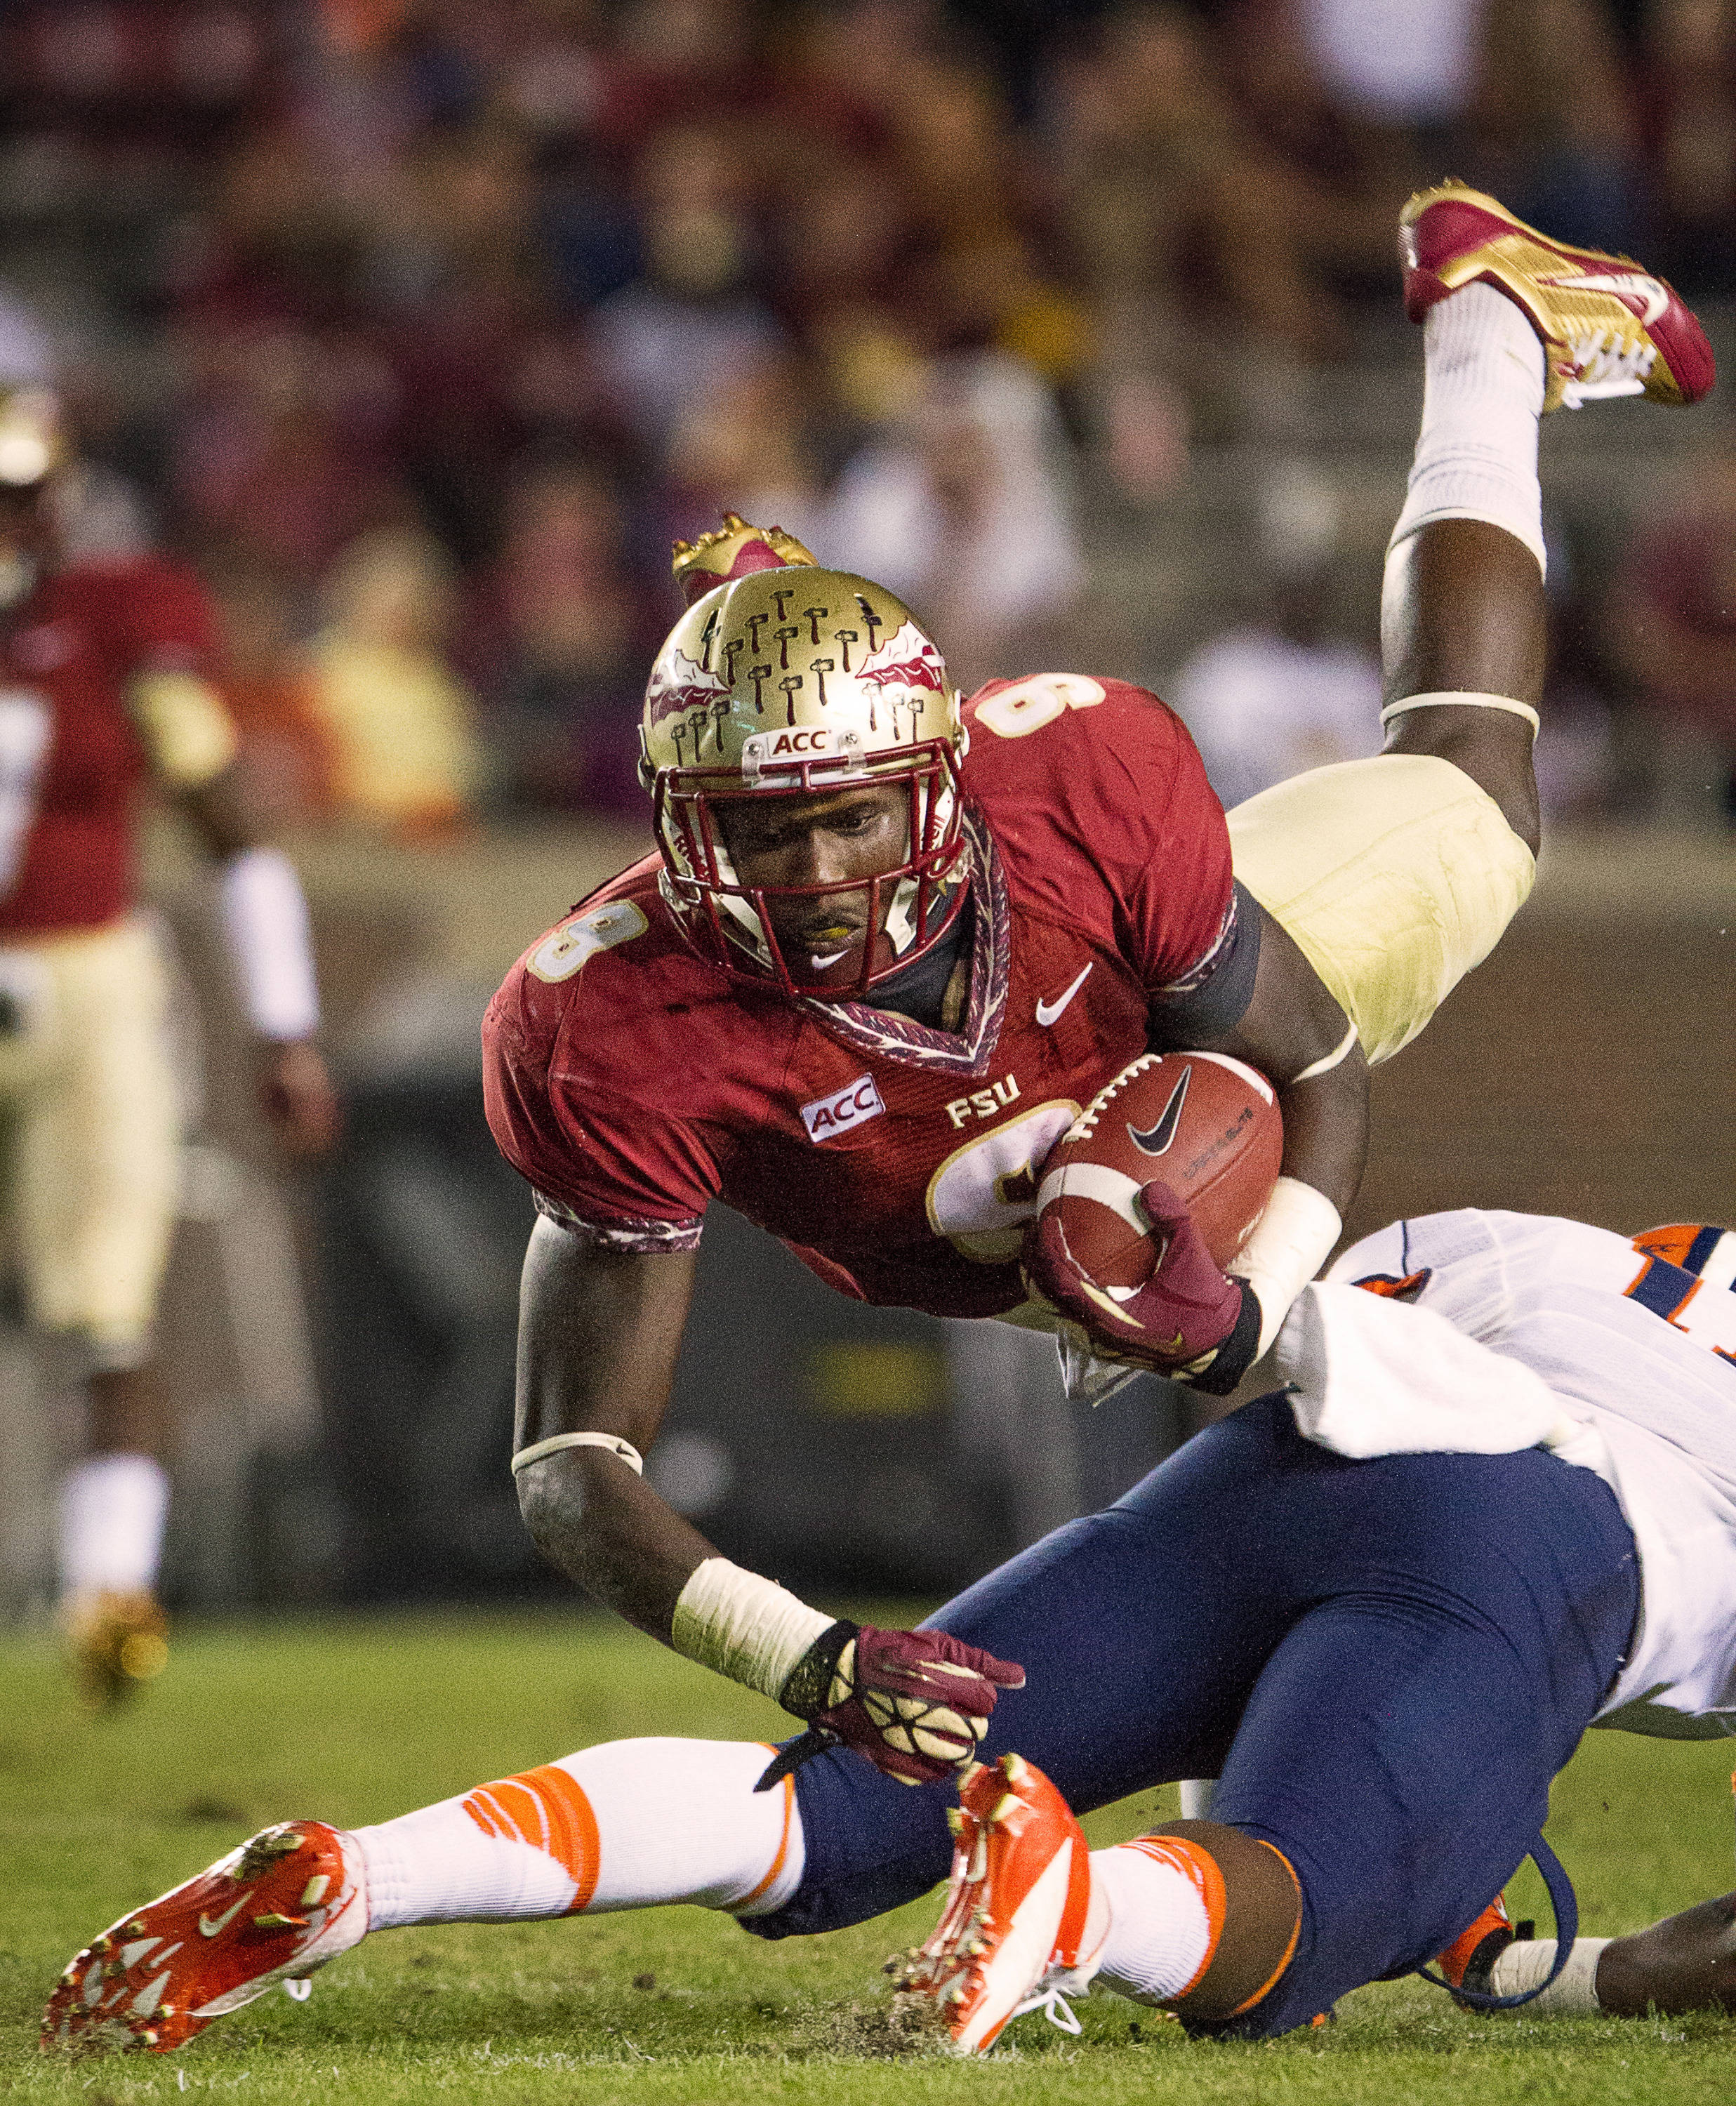 Karlos Williams (9) flies through the air after taking a hit during FSU Football's 59-3 win over Syracuse on Saturday, November 16, 2013 in Tallahassee, Fla. Photo by Mike Schwarz.